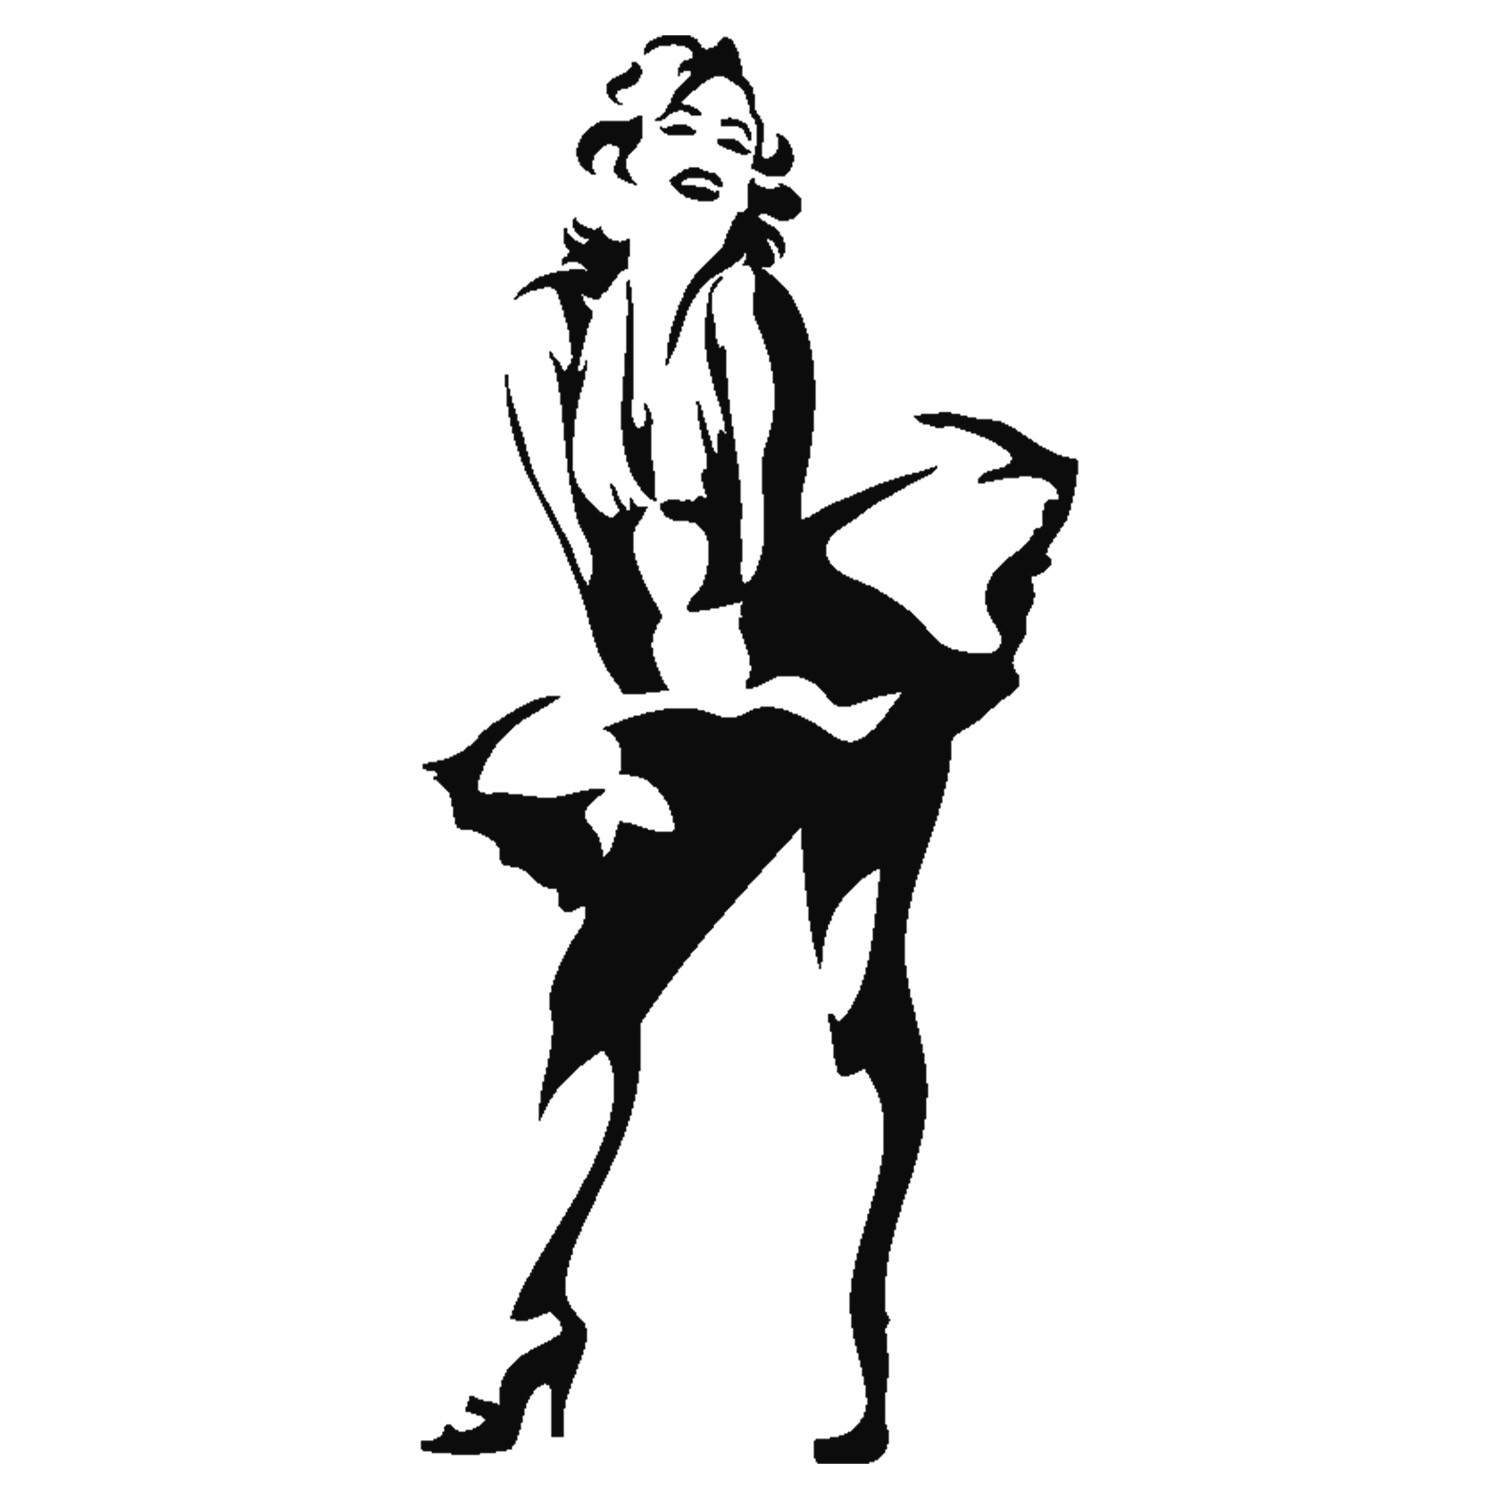 marilyn monroe silhouette at getdrawings com free for personal use rh getdrawings com marilyn monroe clip art free marilyn monroe black and white clipart